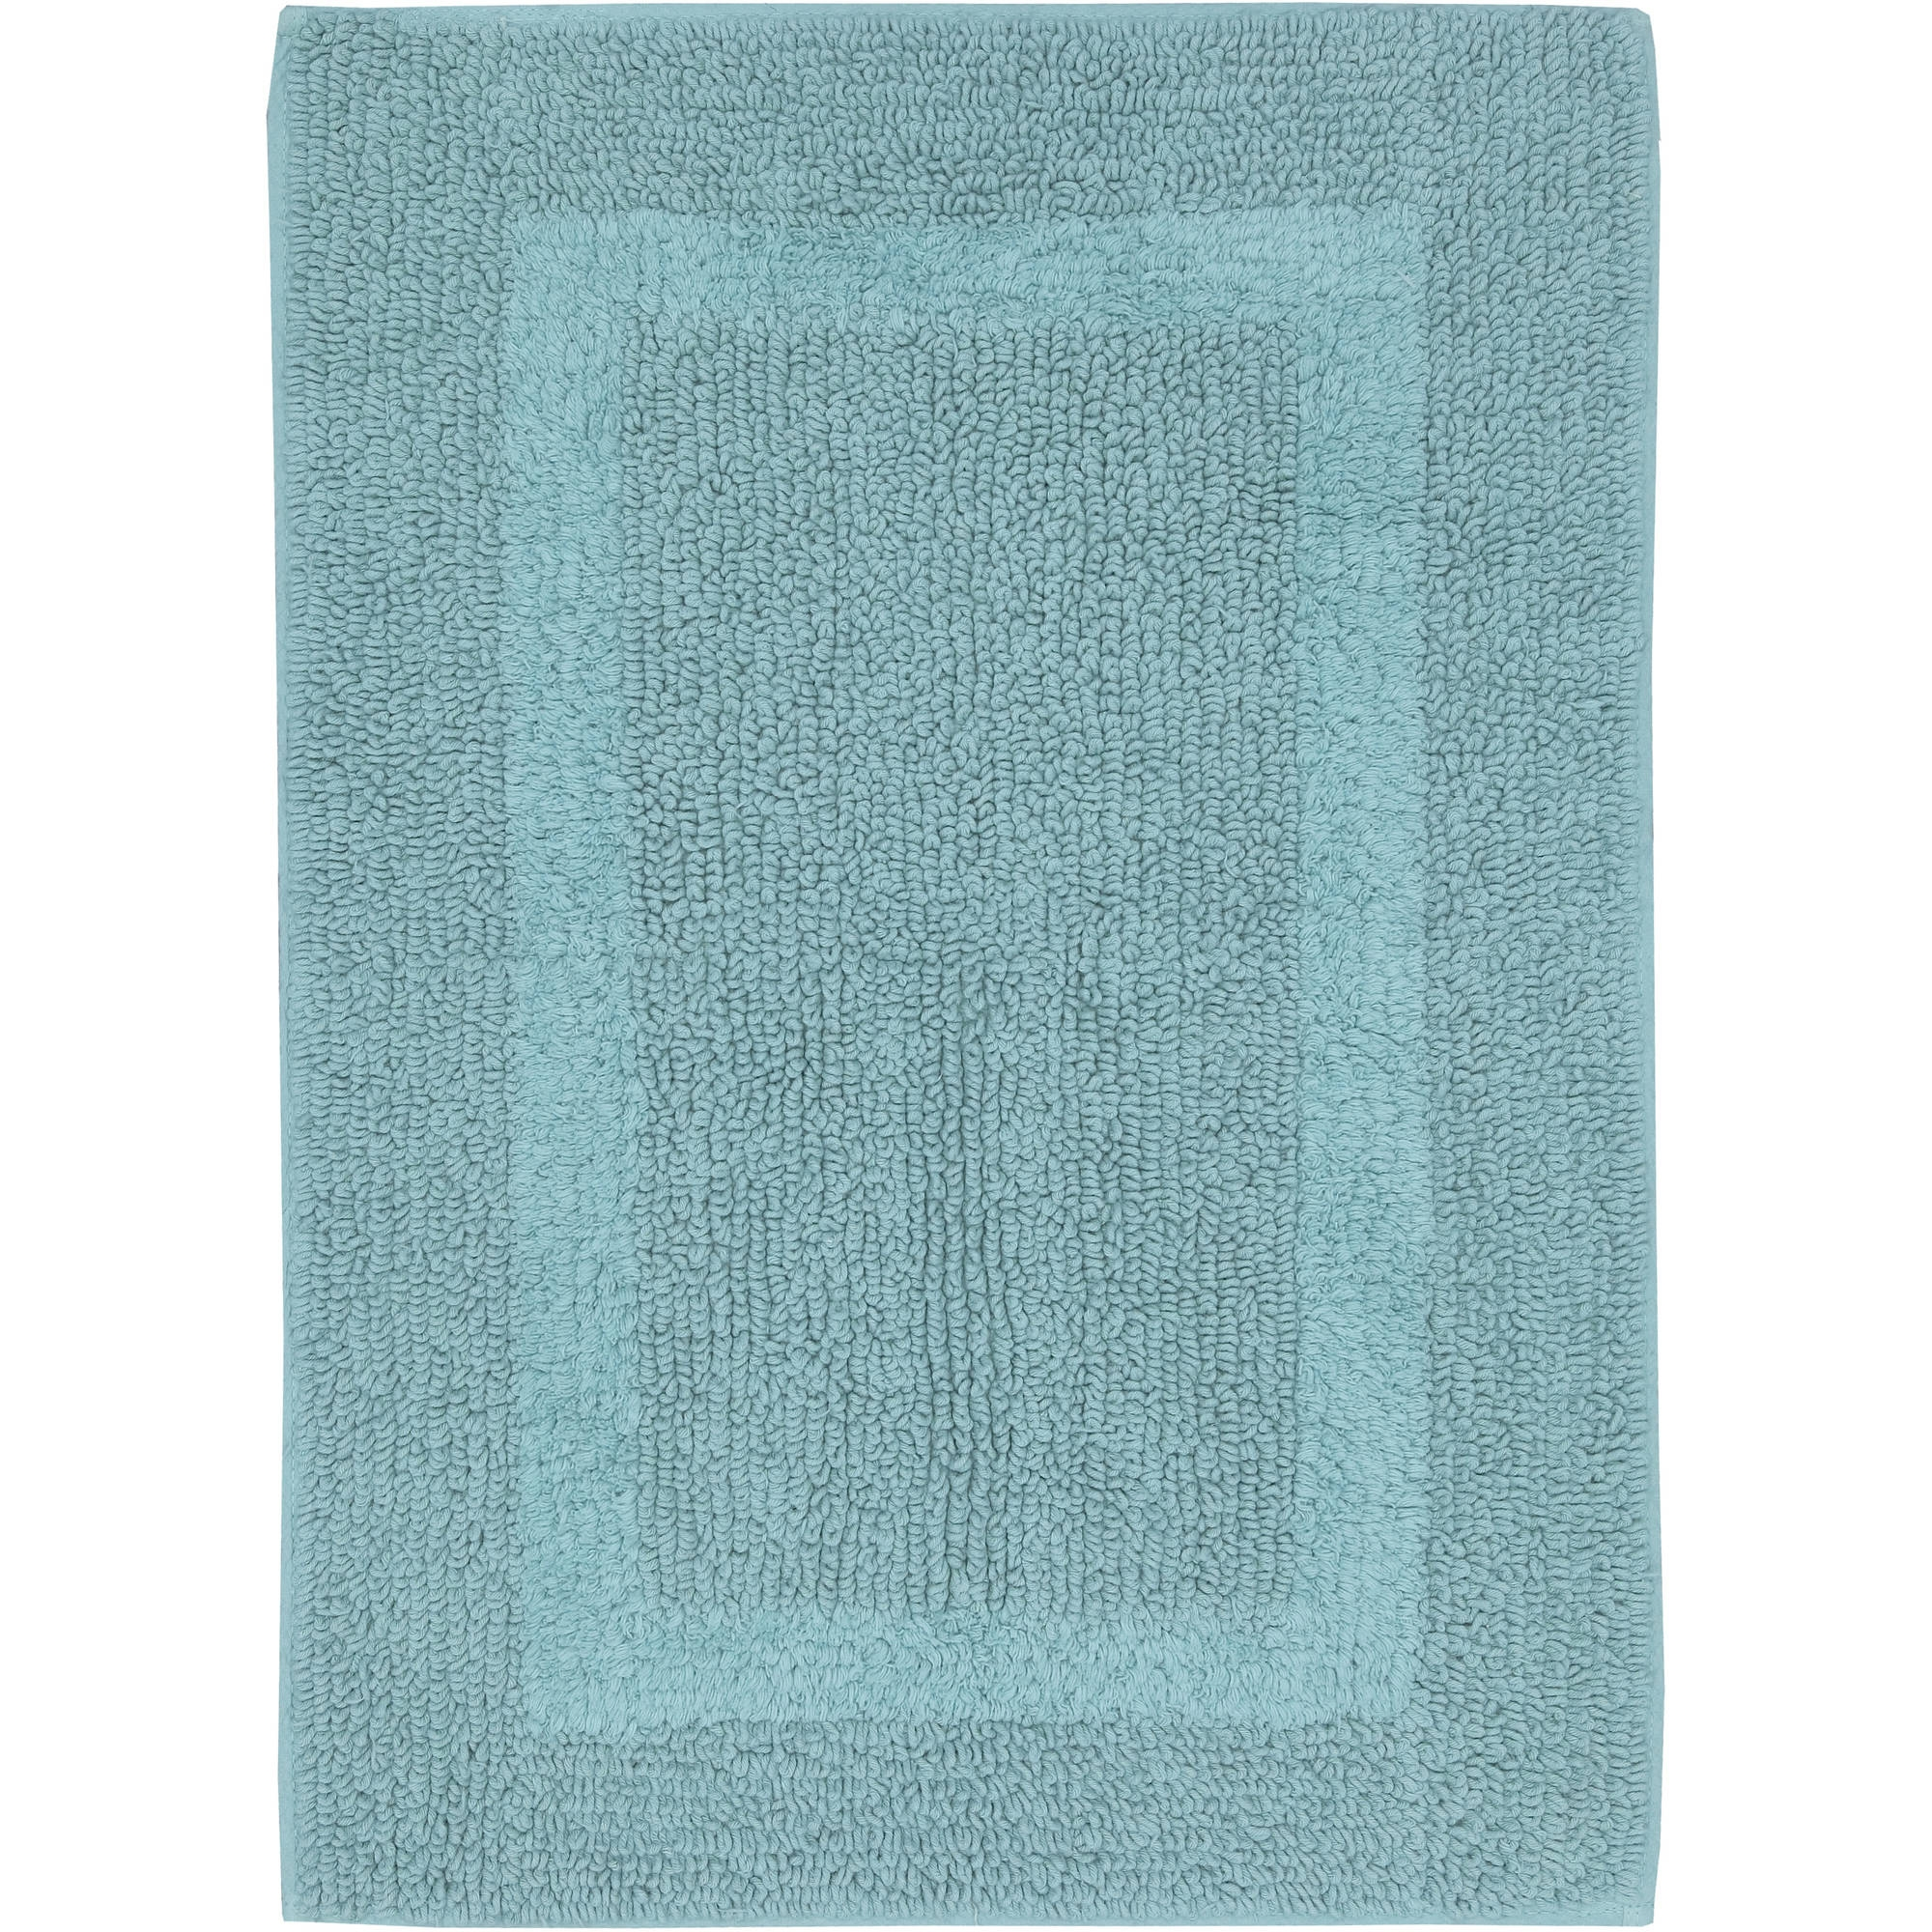 Permalink to Day Spa Bathroom Rugs